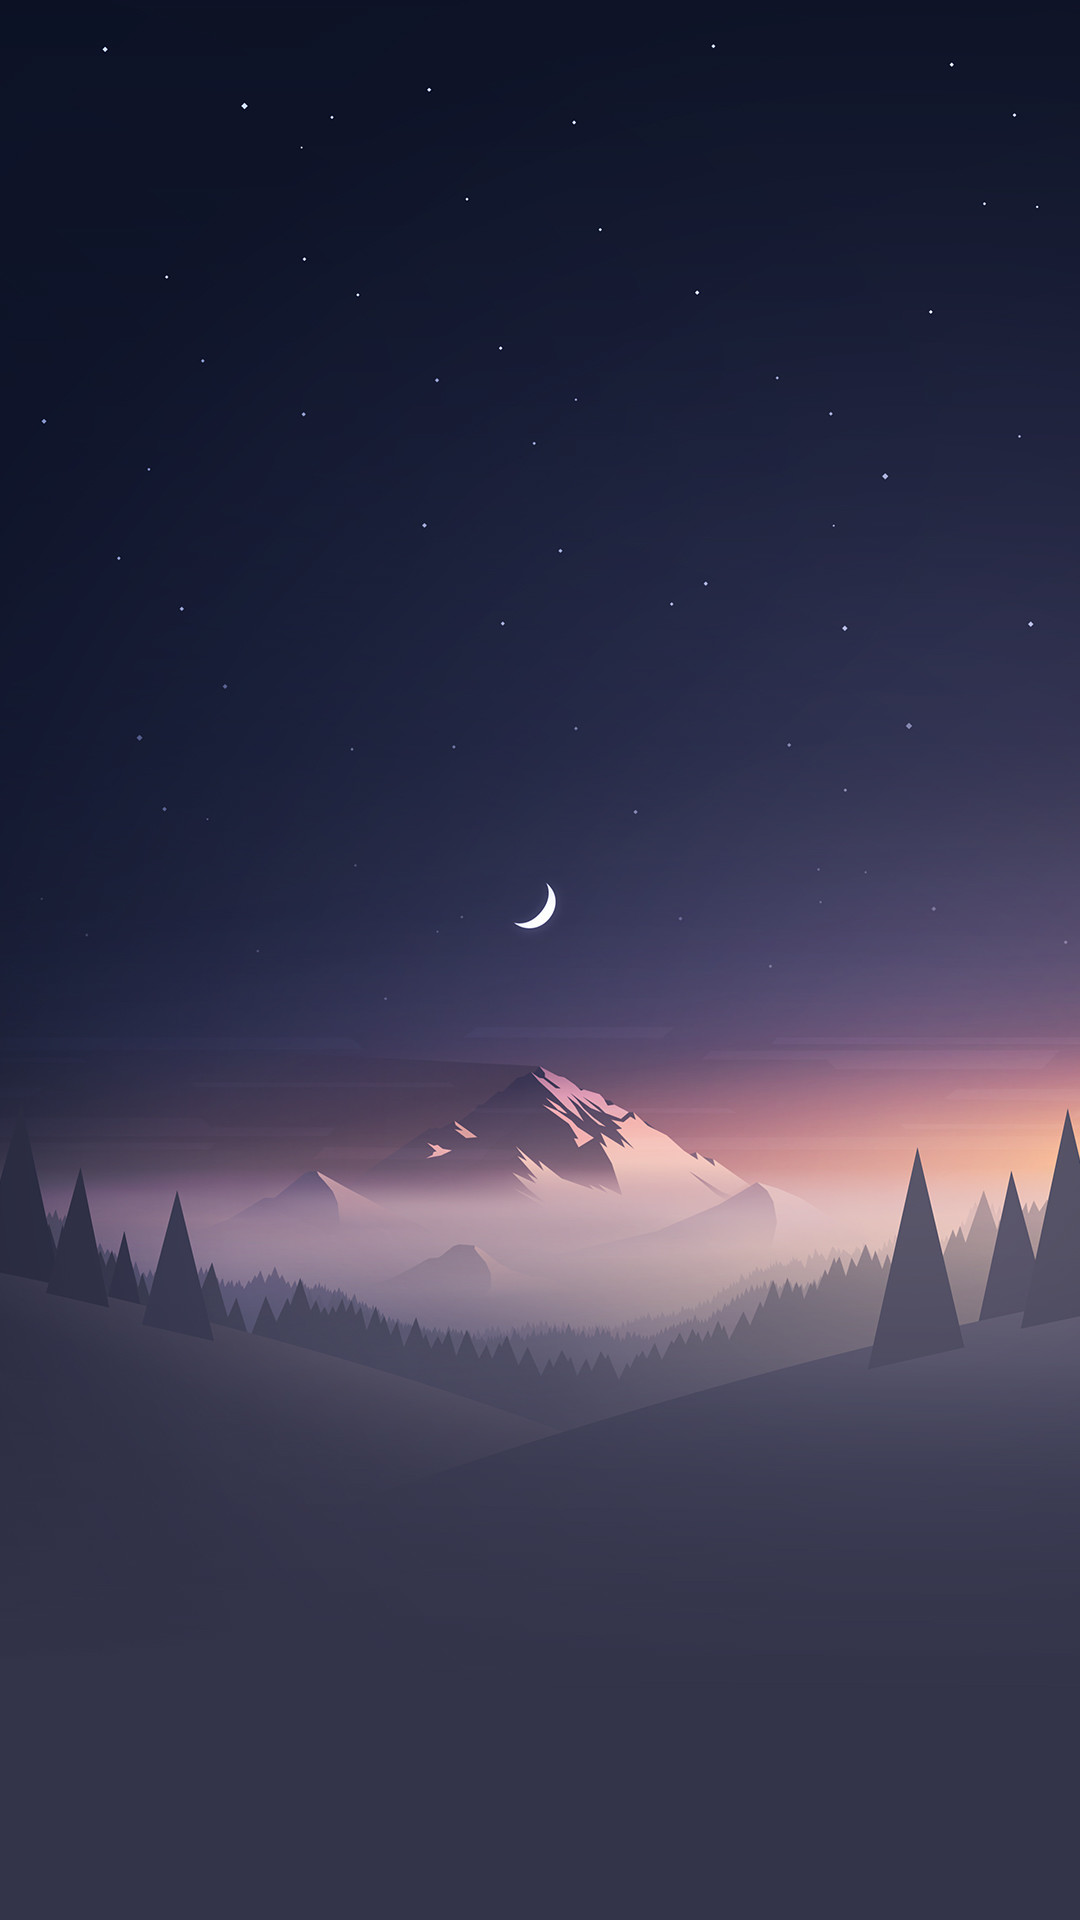 1080x1920 Stars And Moon Winter Mountain Landscape iPhone 6+ HD Wallpaper - http://